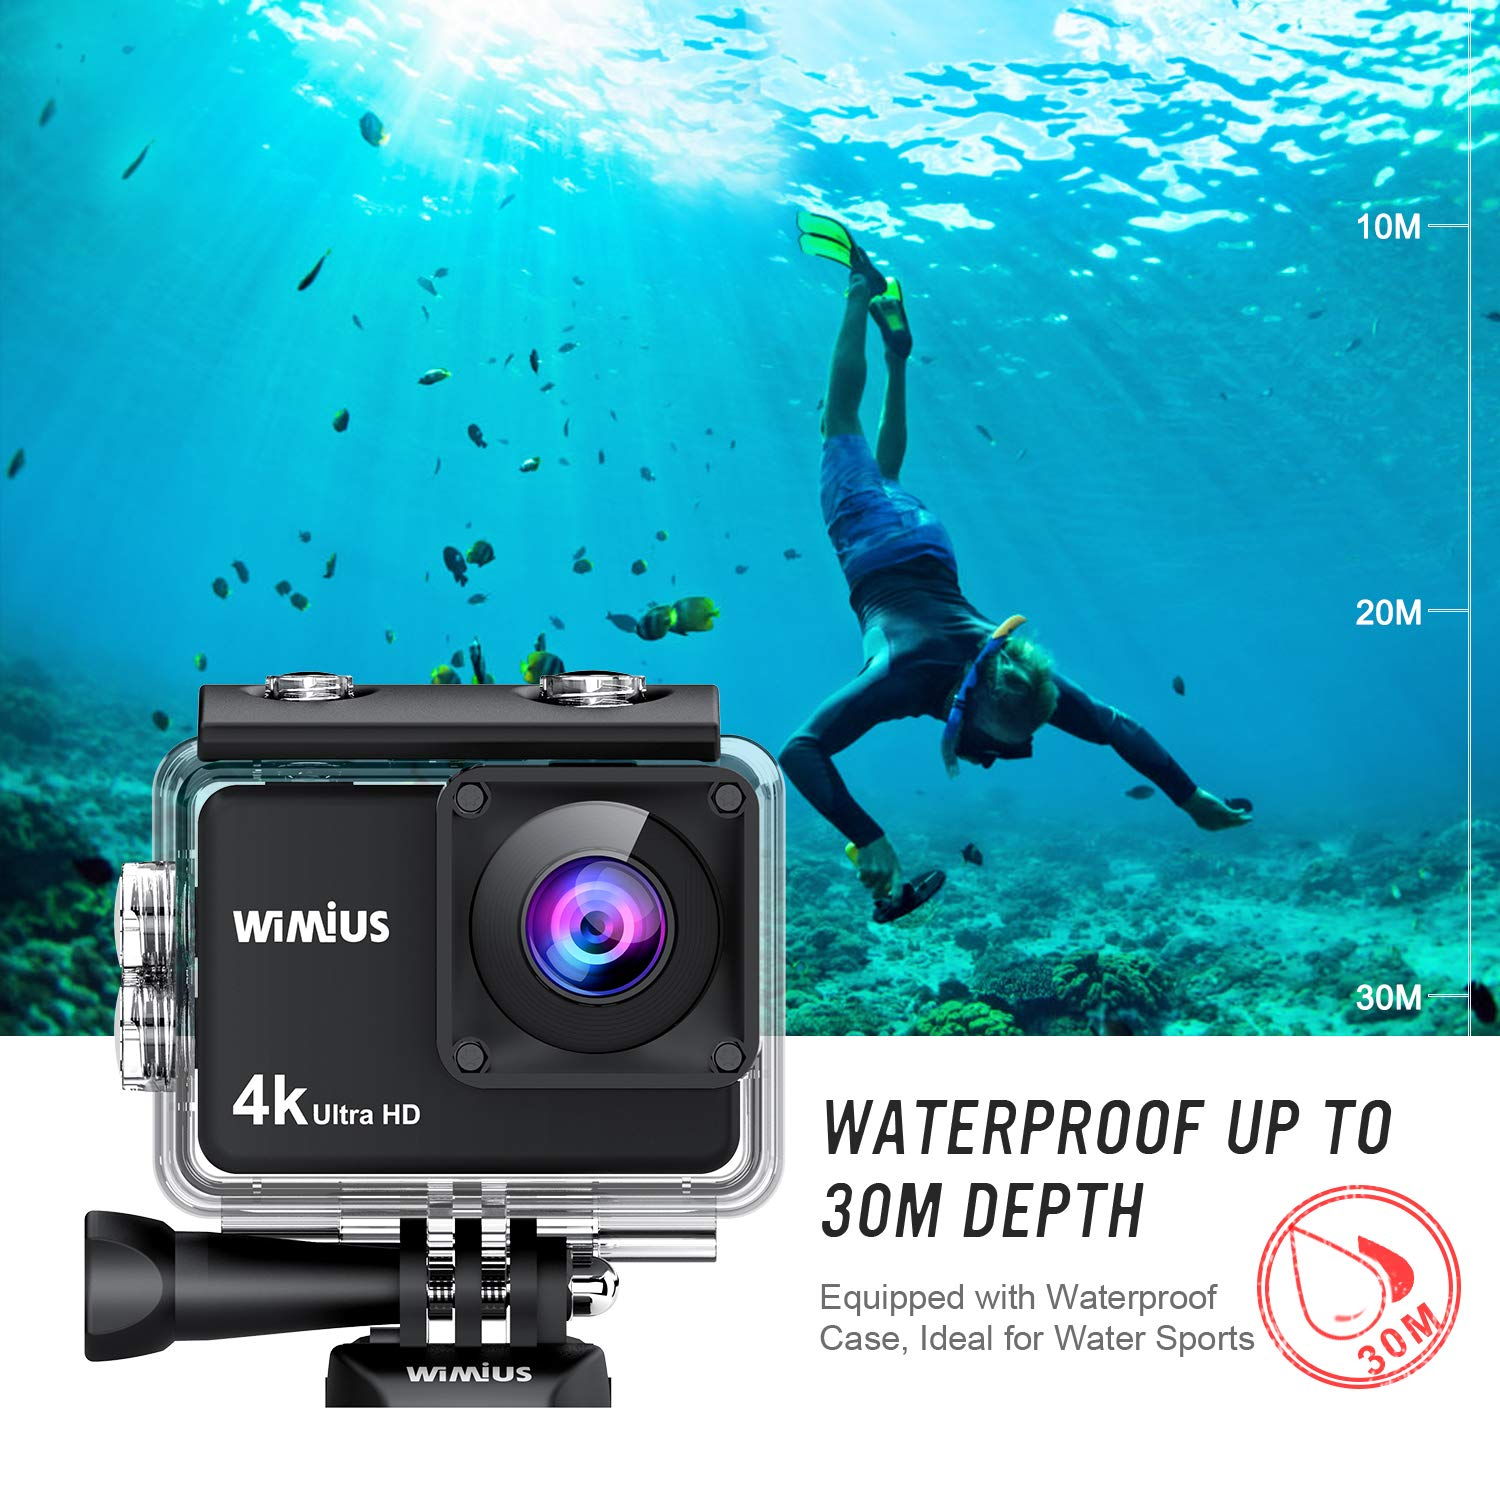 WiMiUS 4K Action Camera 2 Inch Touch Screen 16MP WiFi Sports Camera 30M Underwater Waterproof Camcorder 170 Degree Wide Angle Lens with 2 Rechargeable 1050mAh Batteries and Mounting Accessories by WiMiUS (Image #4)